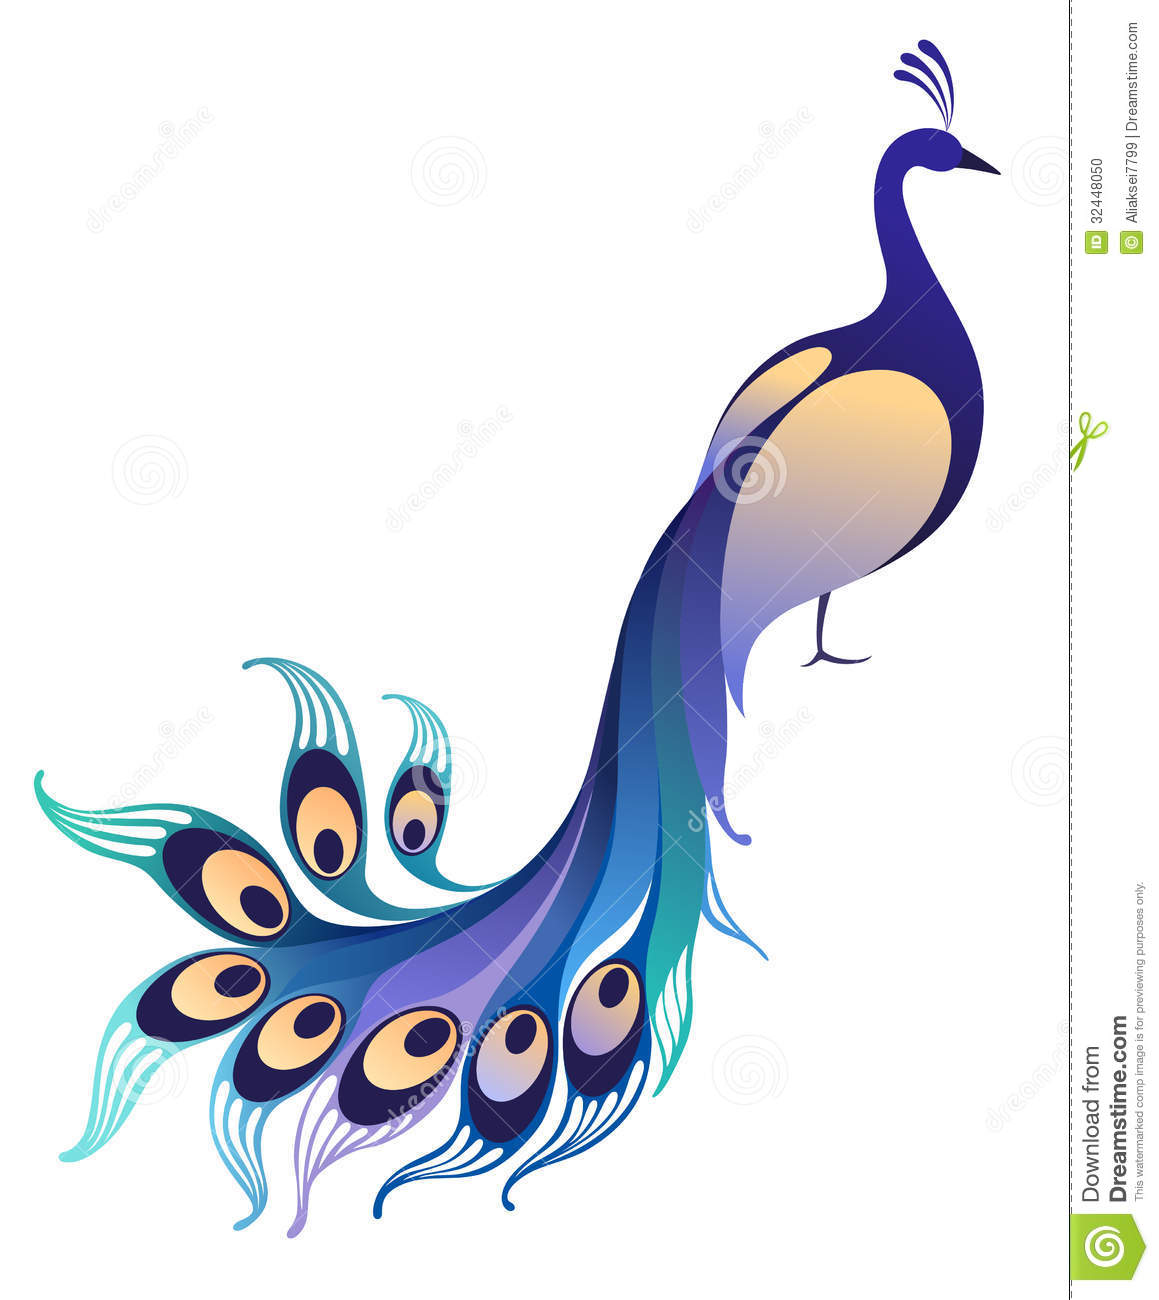 Stock clipart free download picture black and white download Free download peacock clipart - ClipartFox picture black and white download